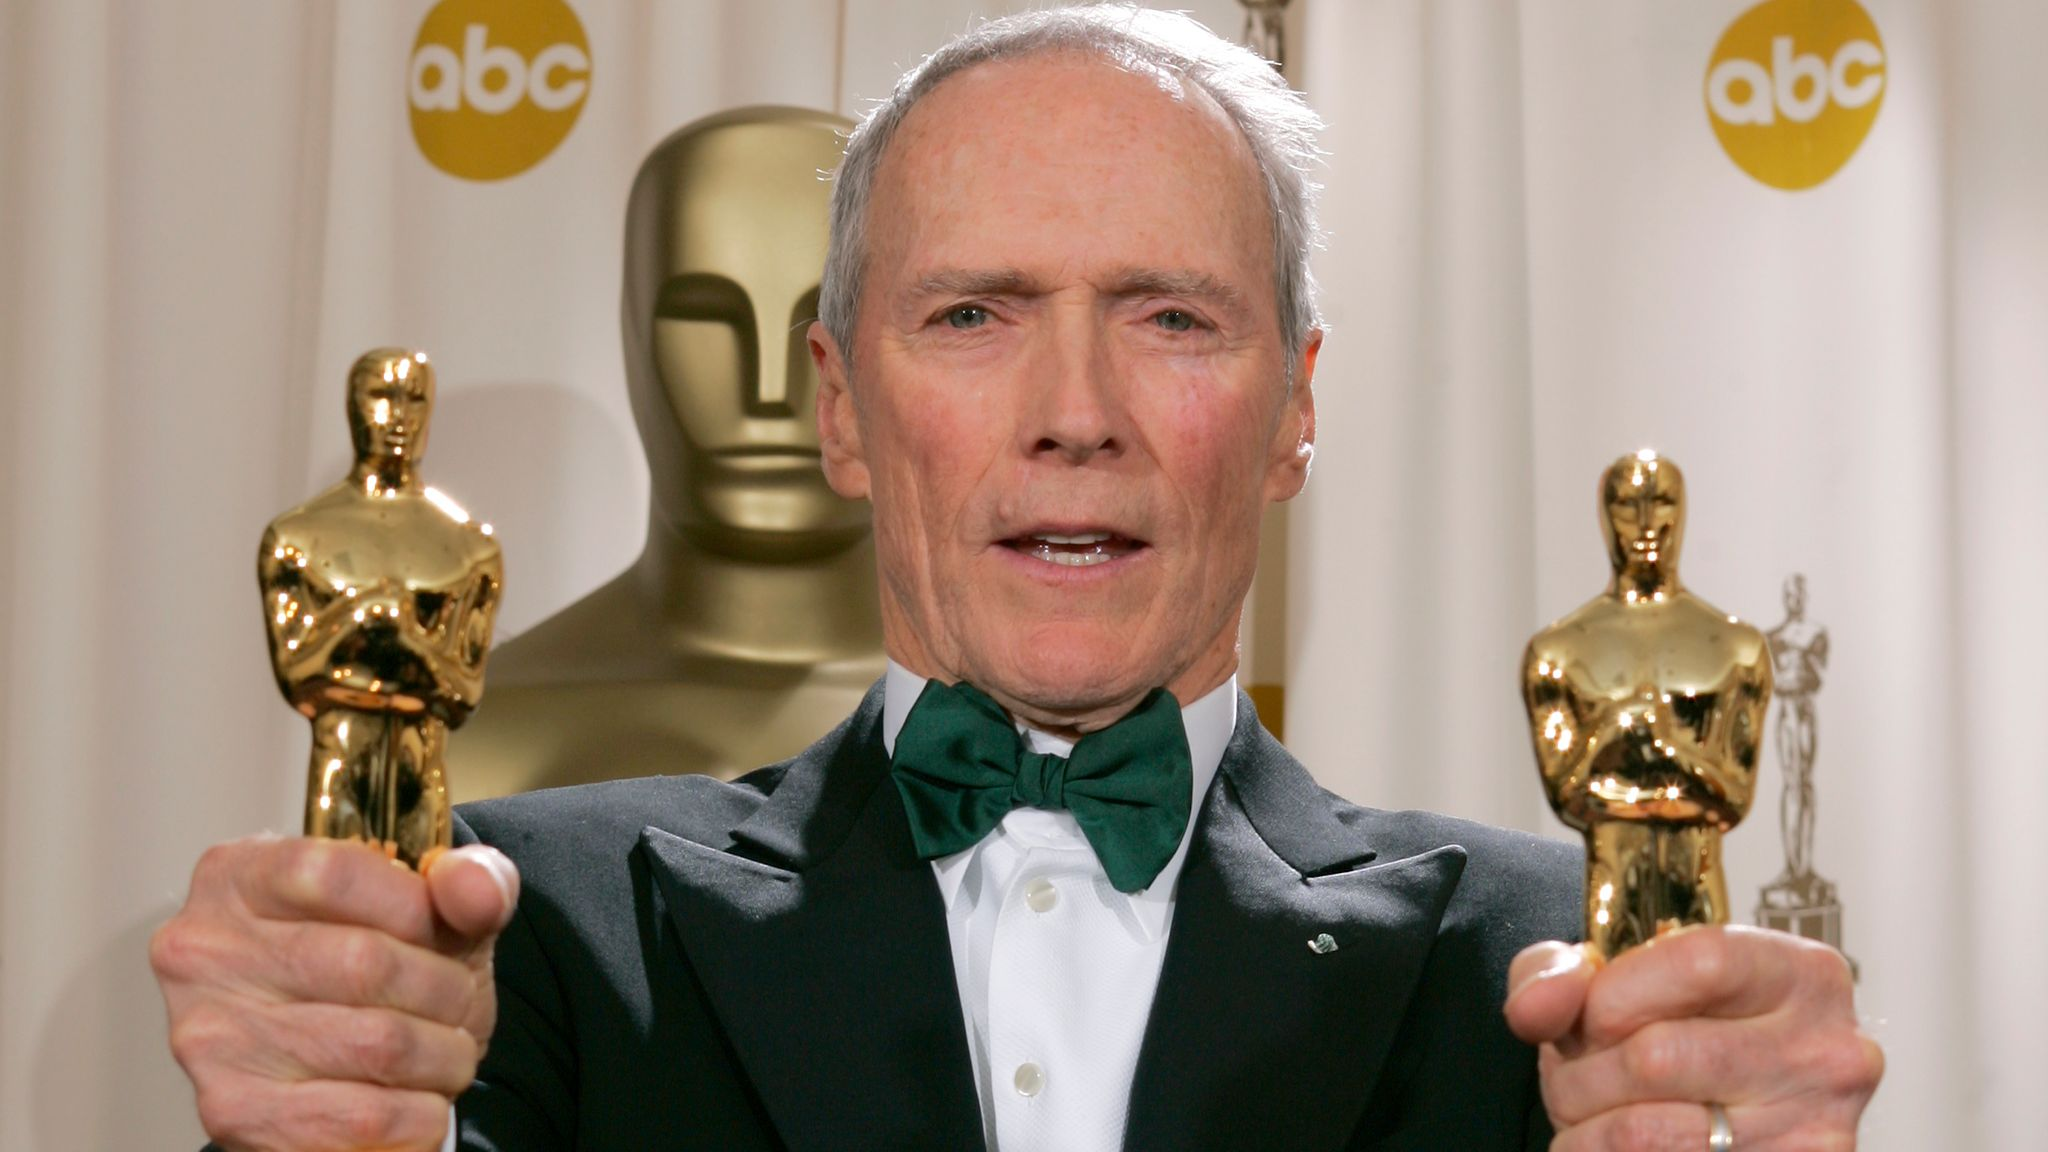 A double-Oscar win for Clint Eastwood in 2005